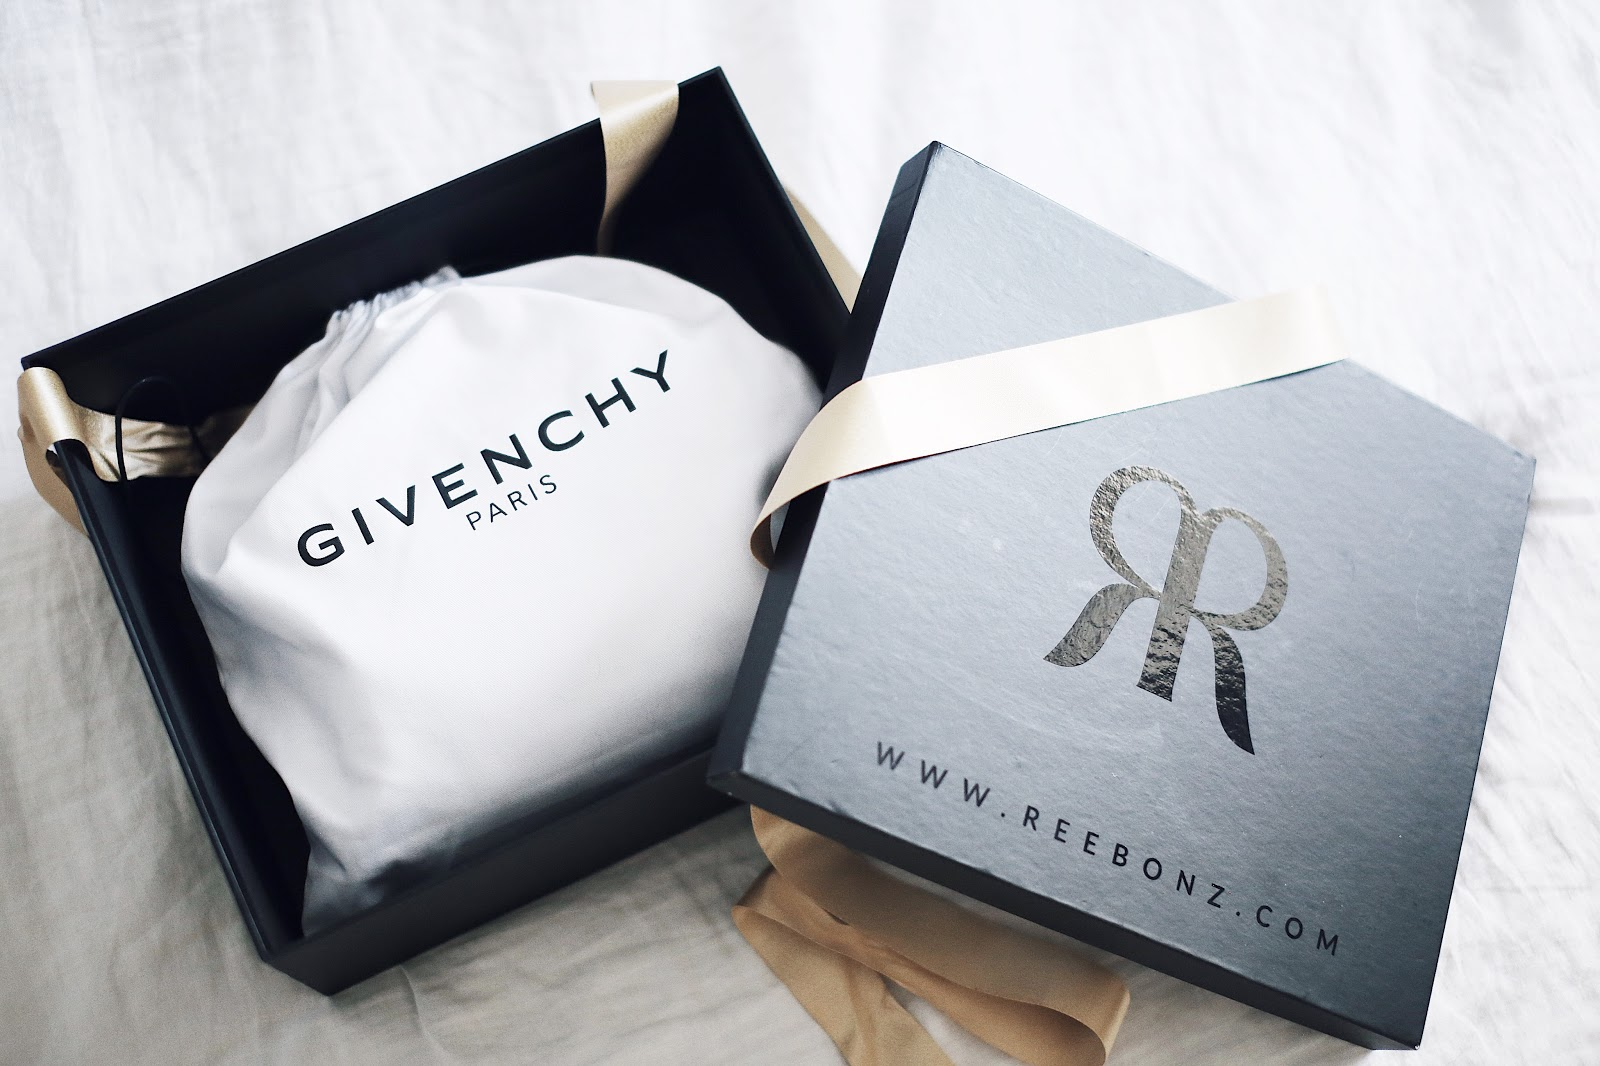 ... Small Pandora Reebonz WISHLIST Pinterest Givenchy hot sale online a2f85  b3606  What I like to think of as the more laid back little sister of my ... 88b0eb74a4